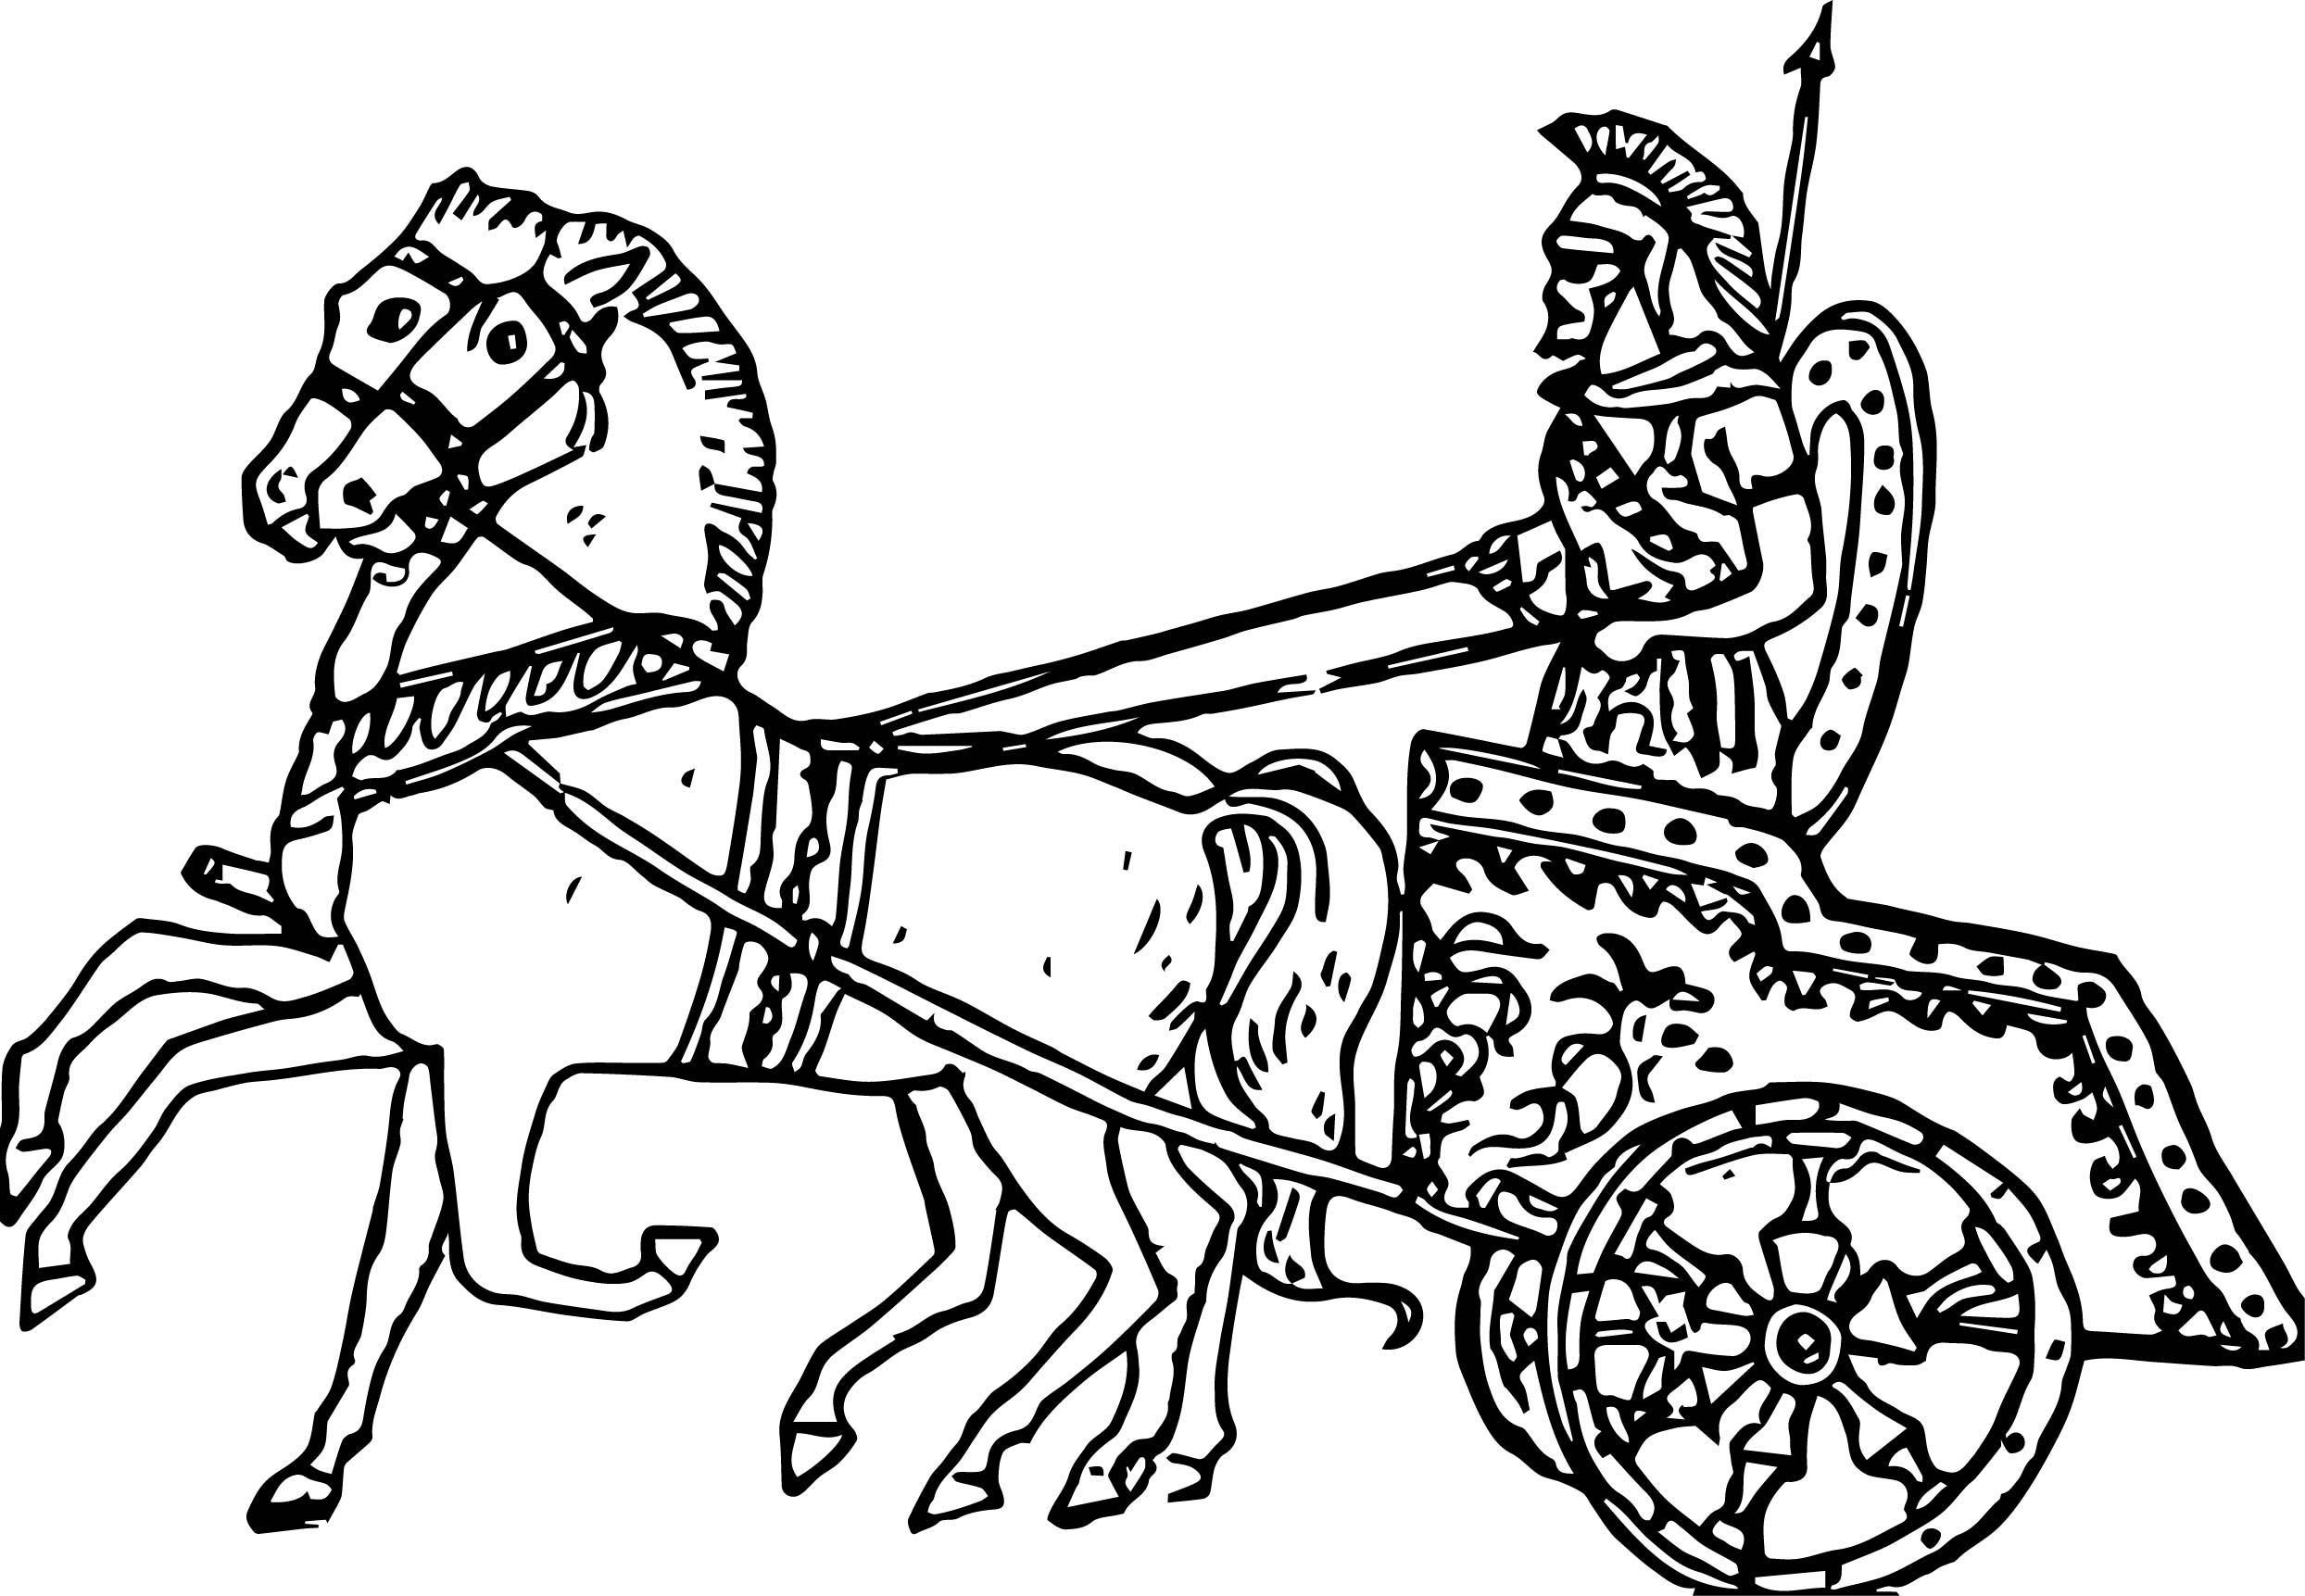 Ancient Roman Chariot Racing Coloring Page In